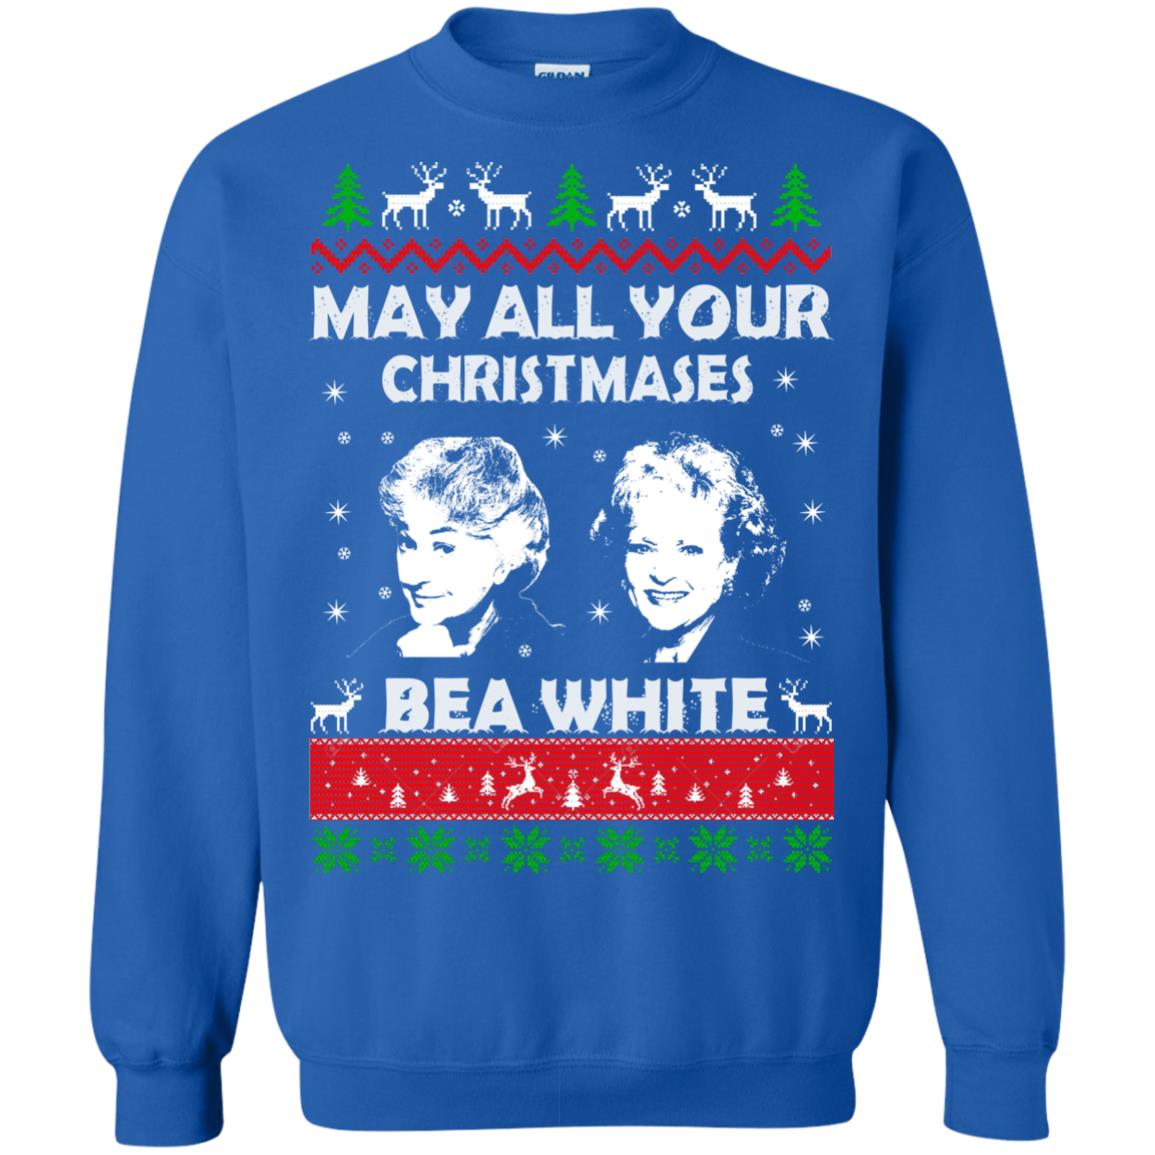 image 733 - May all your Christmases Bea White Ugly Sweater, Hoodie